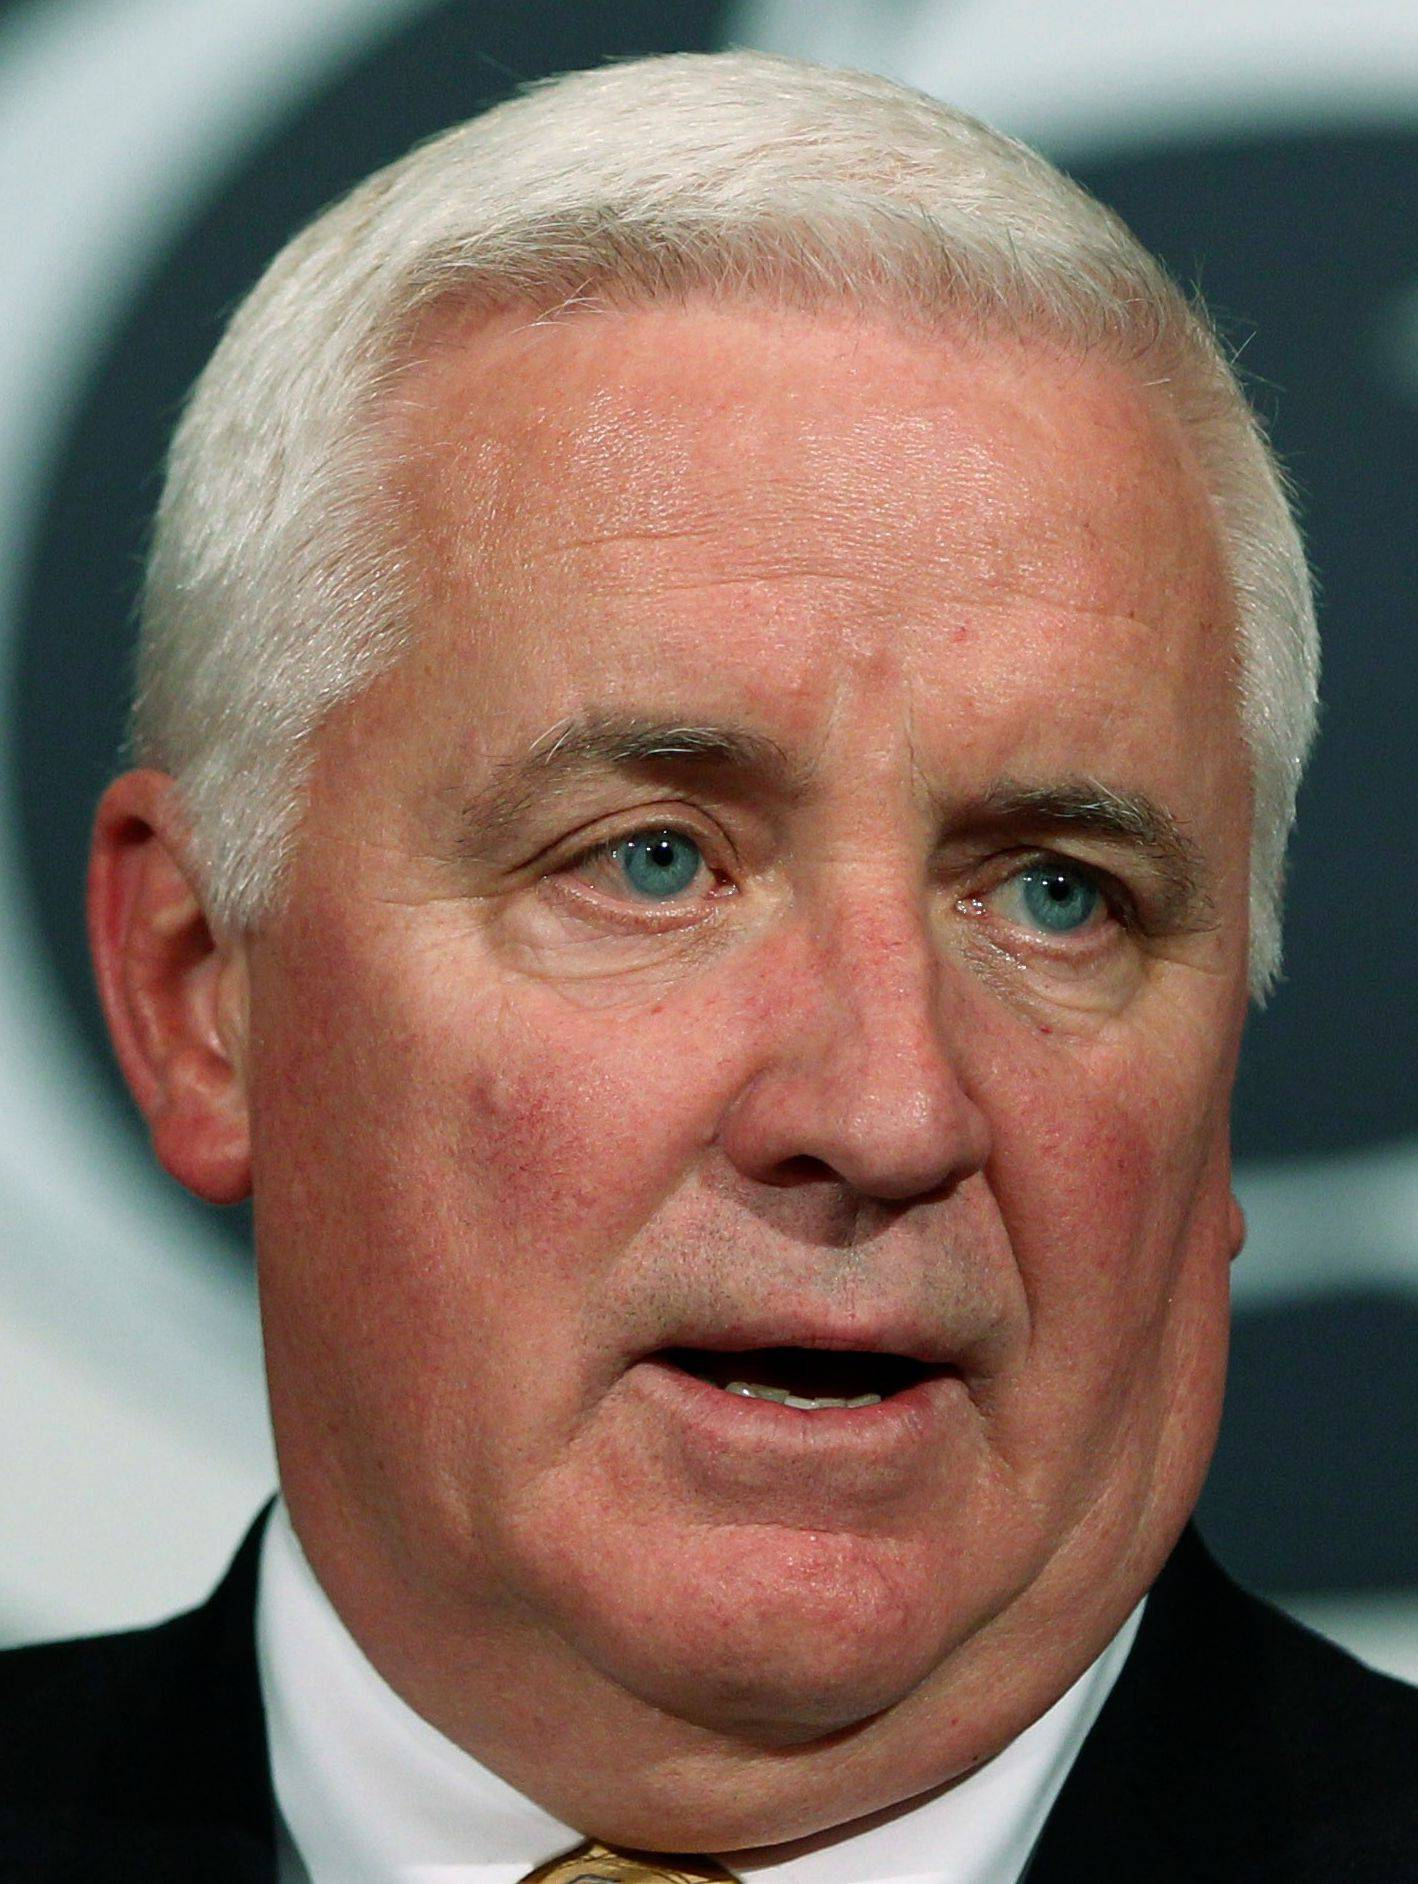 Pennsylvania Gov. Tom Corbett